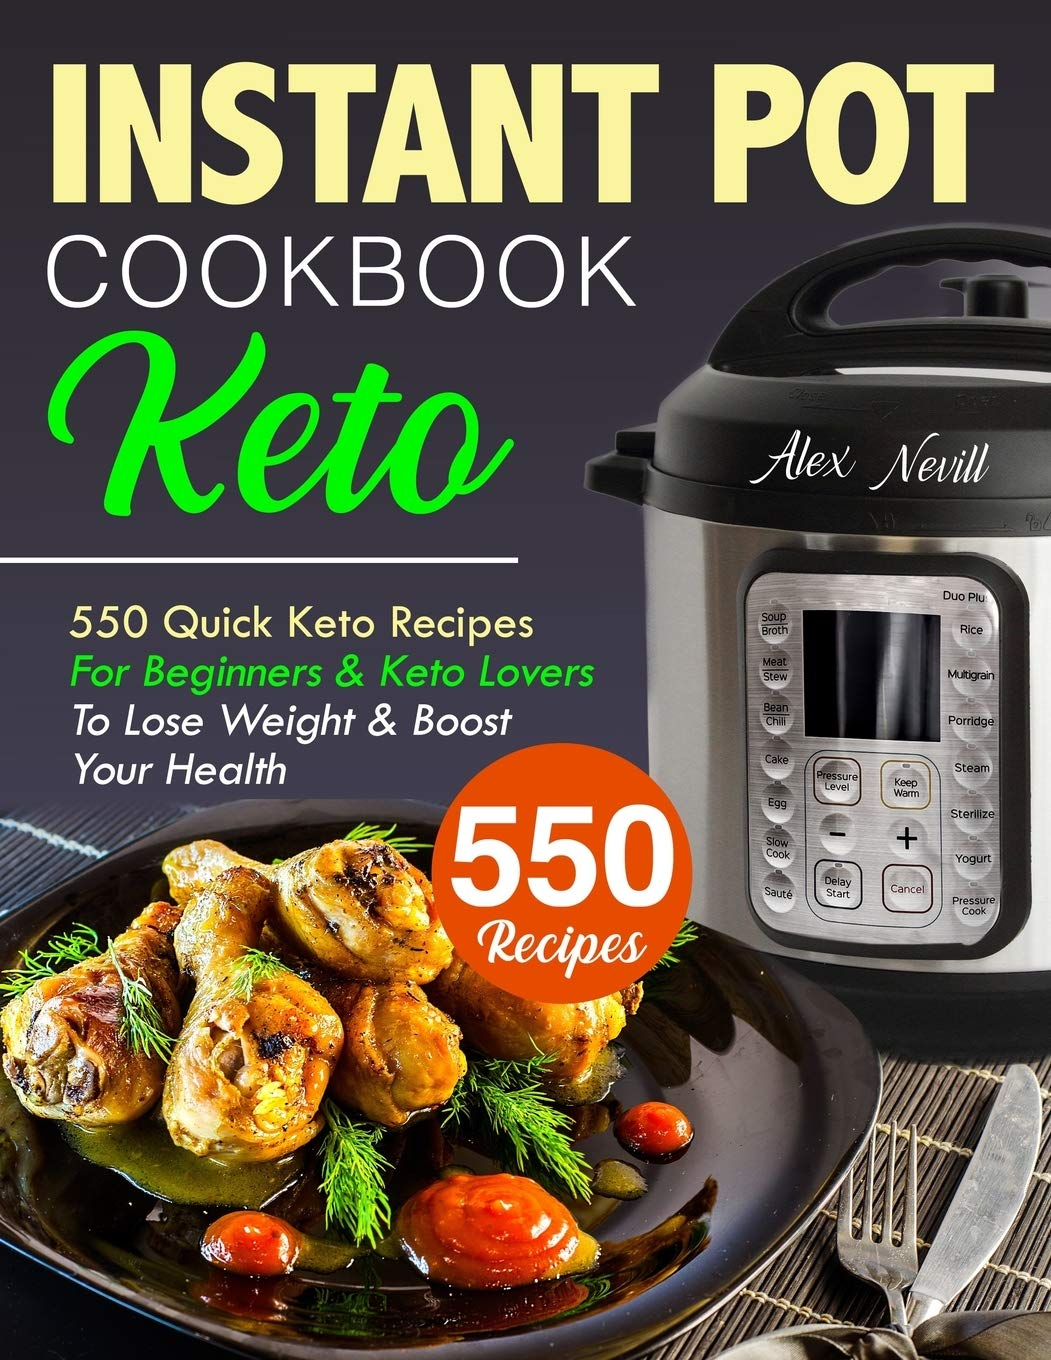 Keto Instant Pot Cookbook: 550 Quick Recipes For Beginners & Keto Lovers To Lose Weight & Boost Your Health (Instant Pot Recipes Book) pdf epub